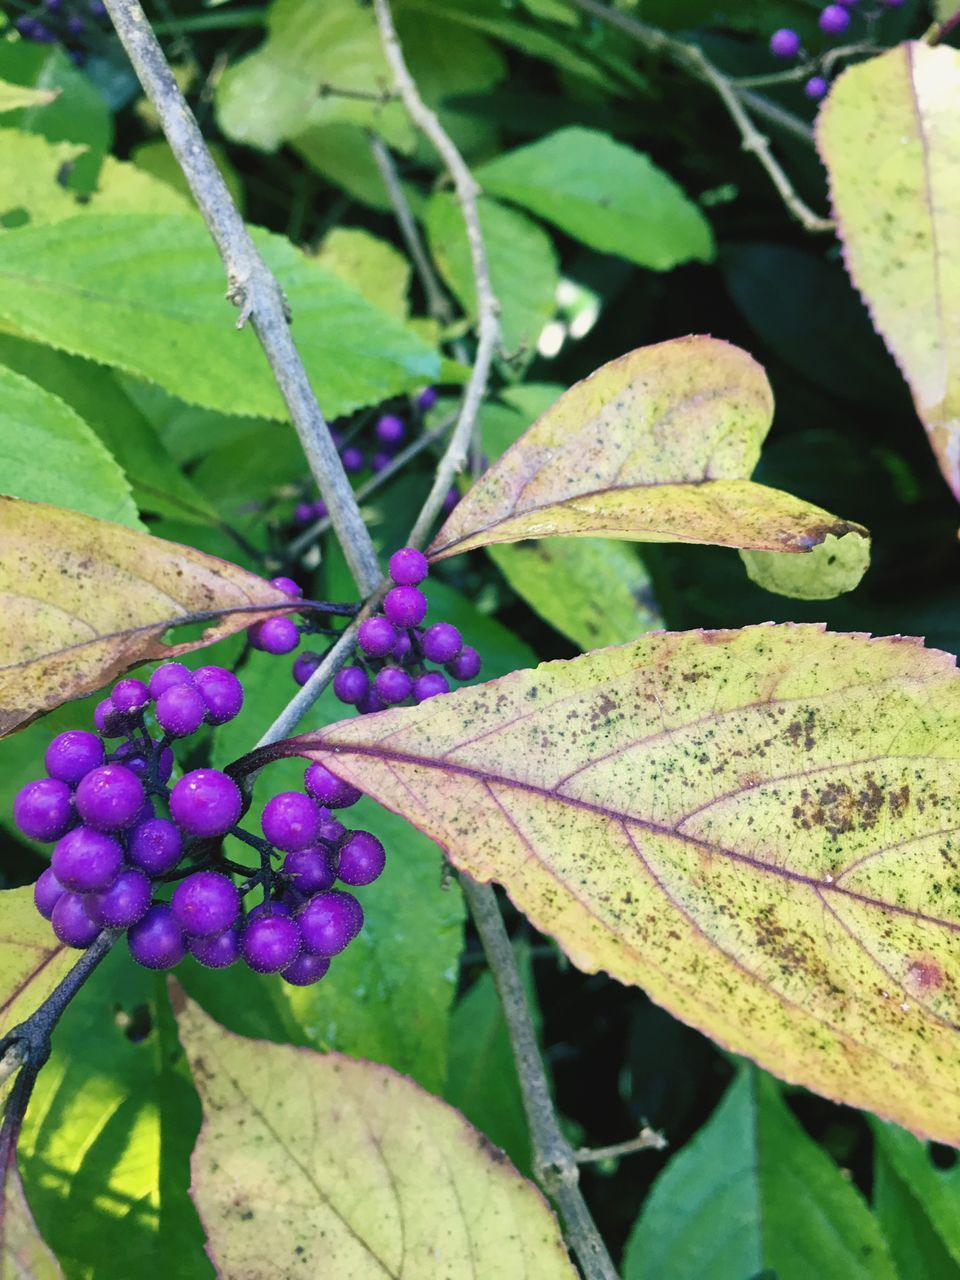 leaf, nature, growth, beauty in nature, purple, day, green color, outdoors, plant, close-up, freshness, fragility, no people, autumn, flower